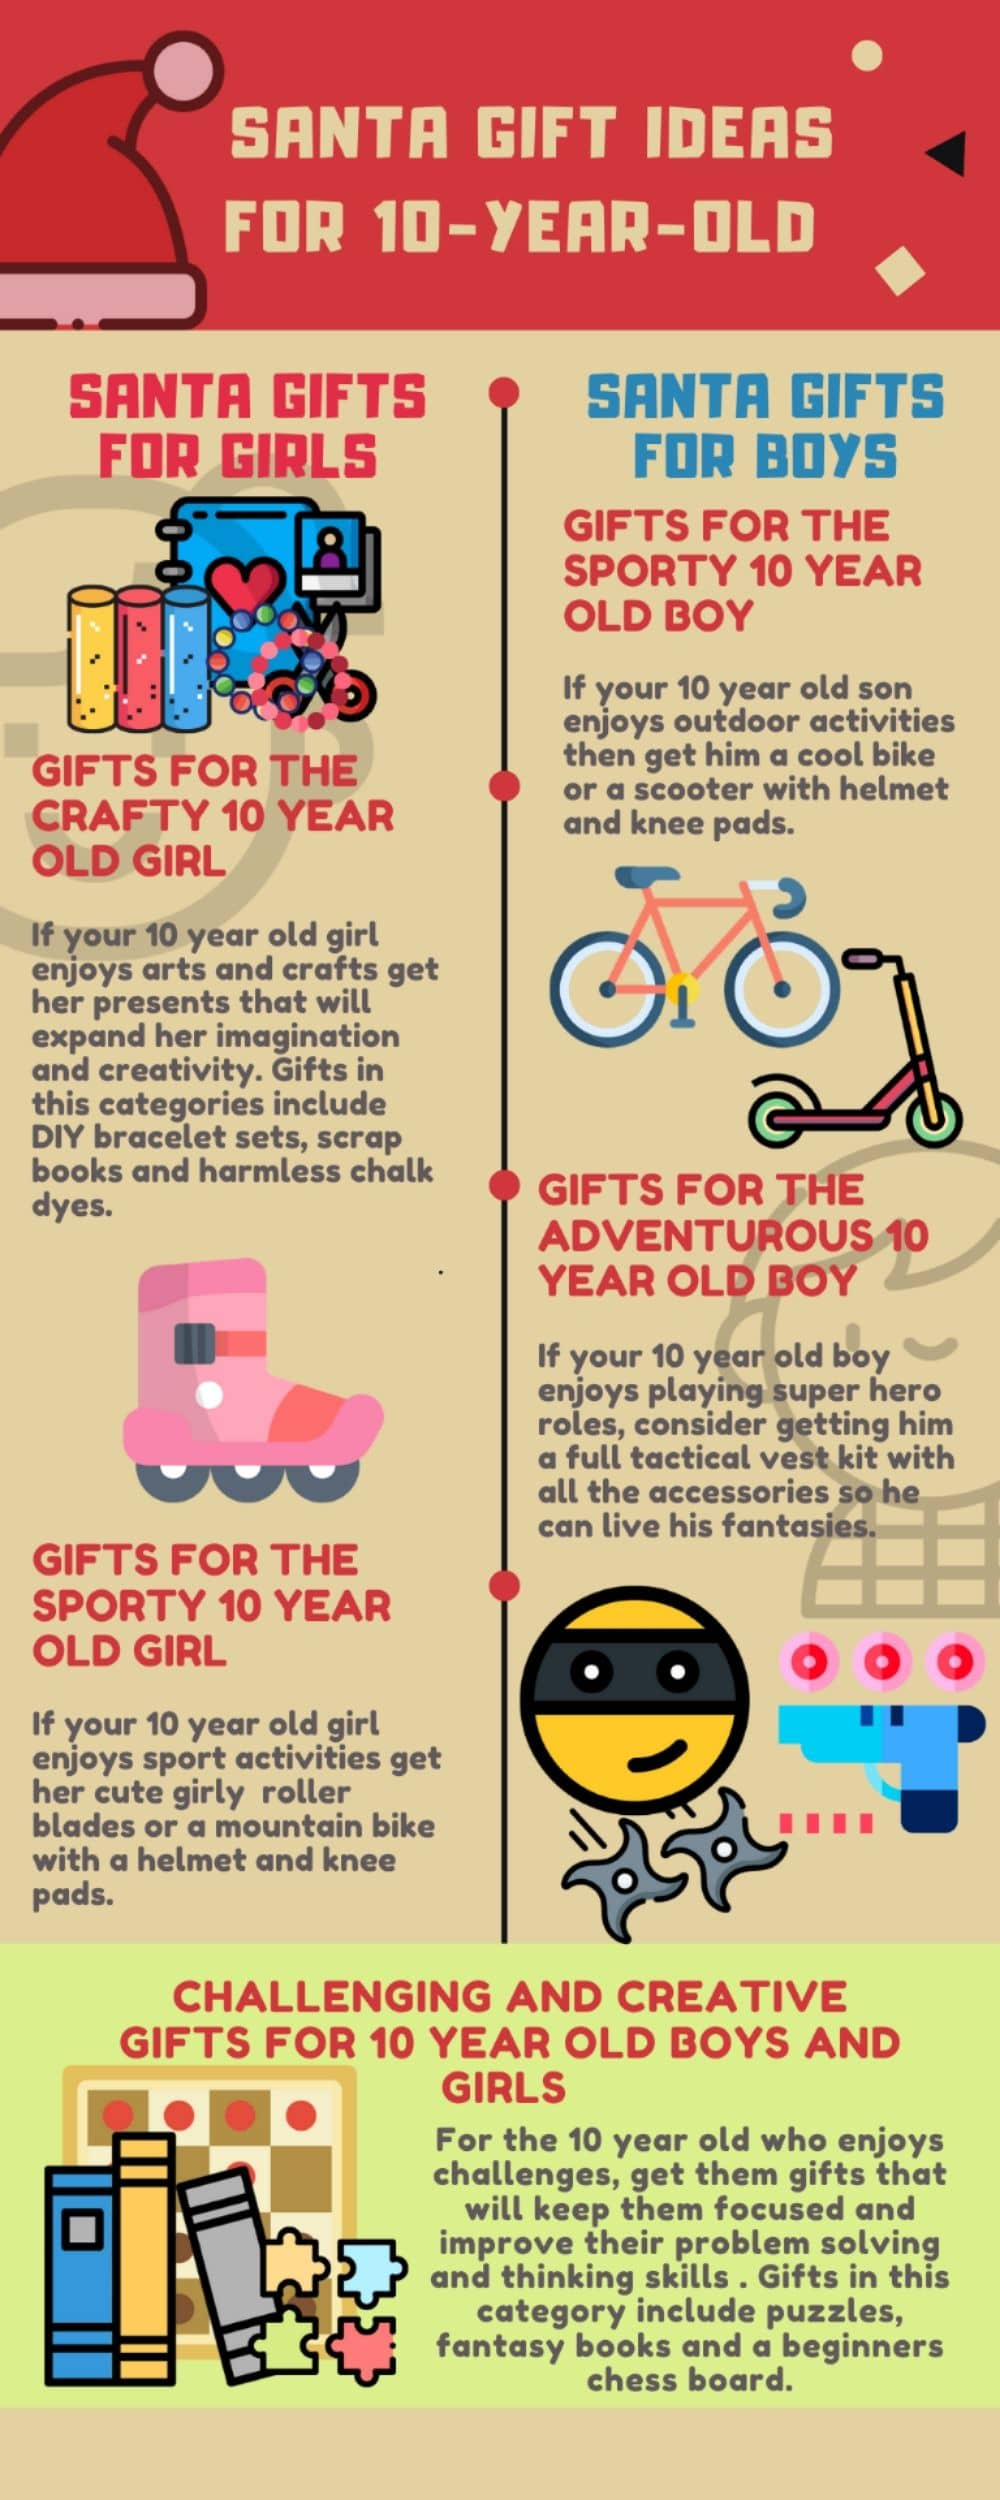 infographic SANTA GIFT IDEAS FOR 10 YEAR OLD